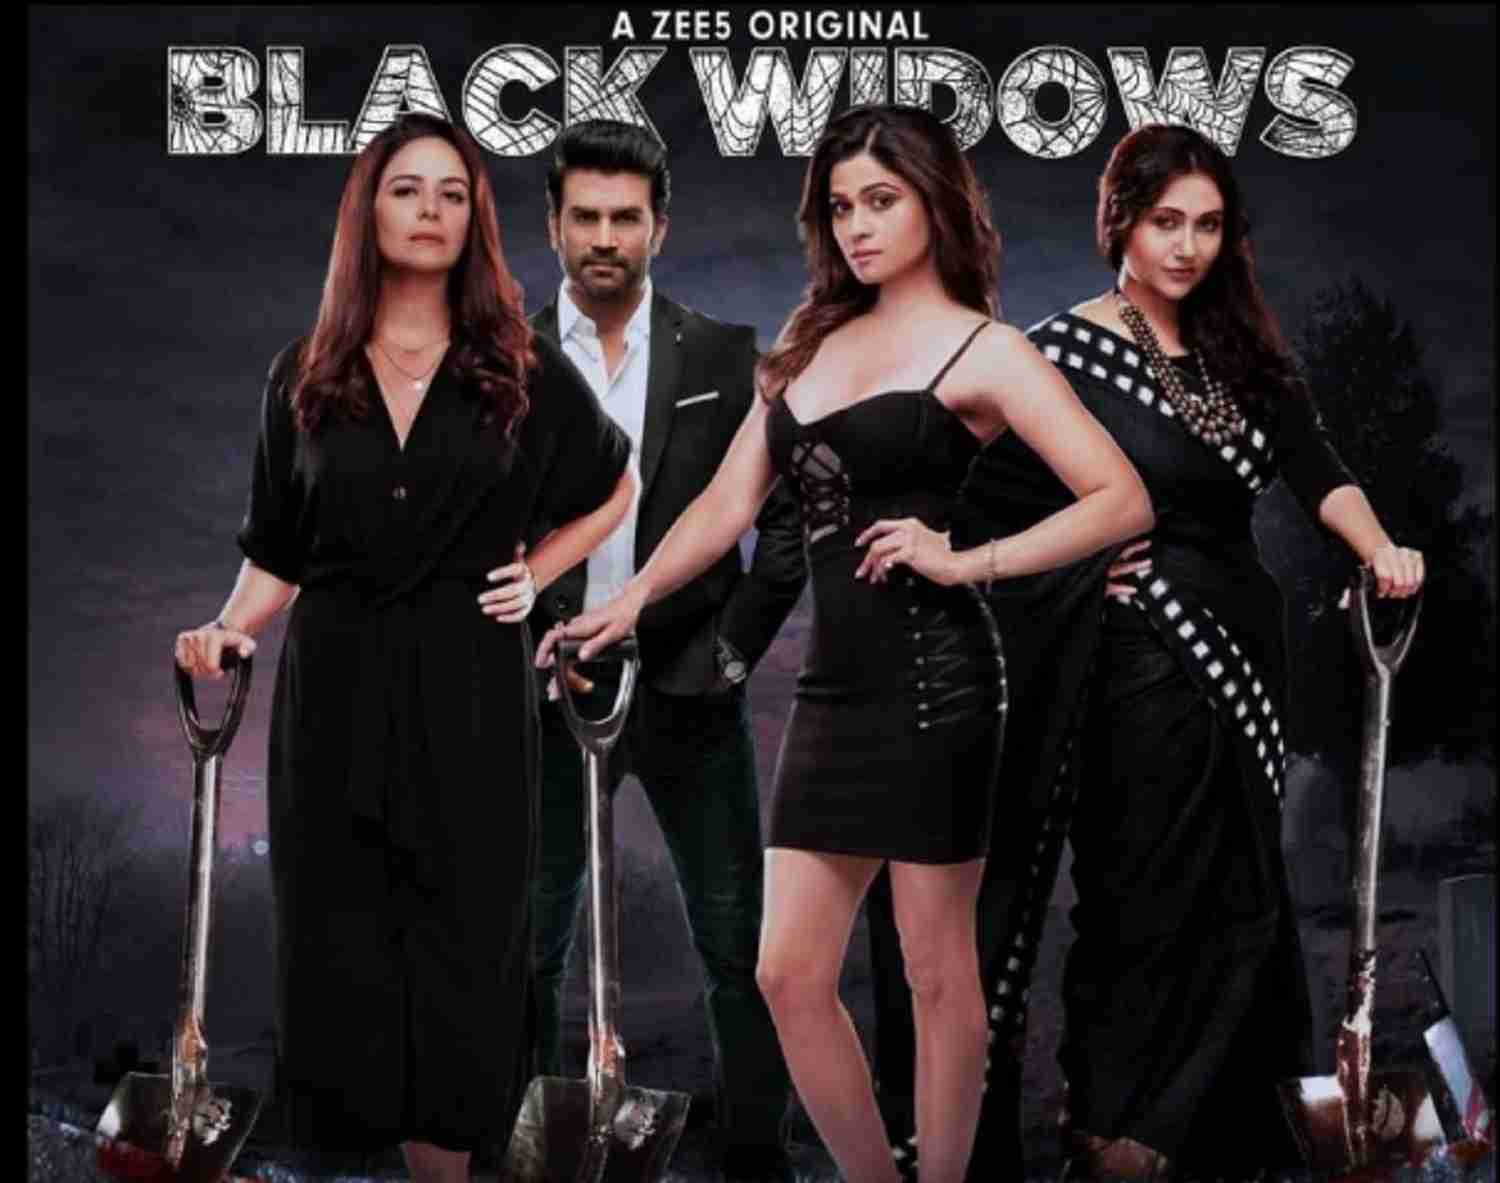 Black Widows Web Series Download Tamilrockers, Black Widows Web Series Download Filmyzilla, Black Widows Web Series Download Filmyhit, Black Widows Web Series Download 9xflix, Black Widows Web Series DownloadPagalworld, Black Widows Full Web Series Download 2020, Black Widows Web Series Download Zee5, Black Widows Web Series Release Date, Black Widows Web Series Cast, Black Widows Web Series Review in HIndi